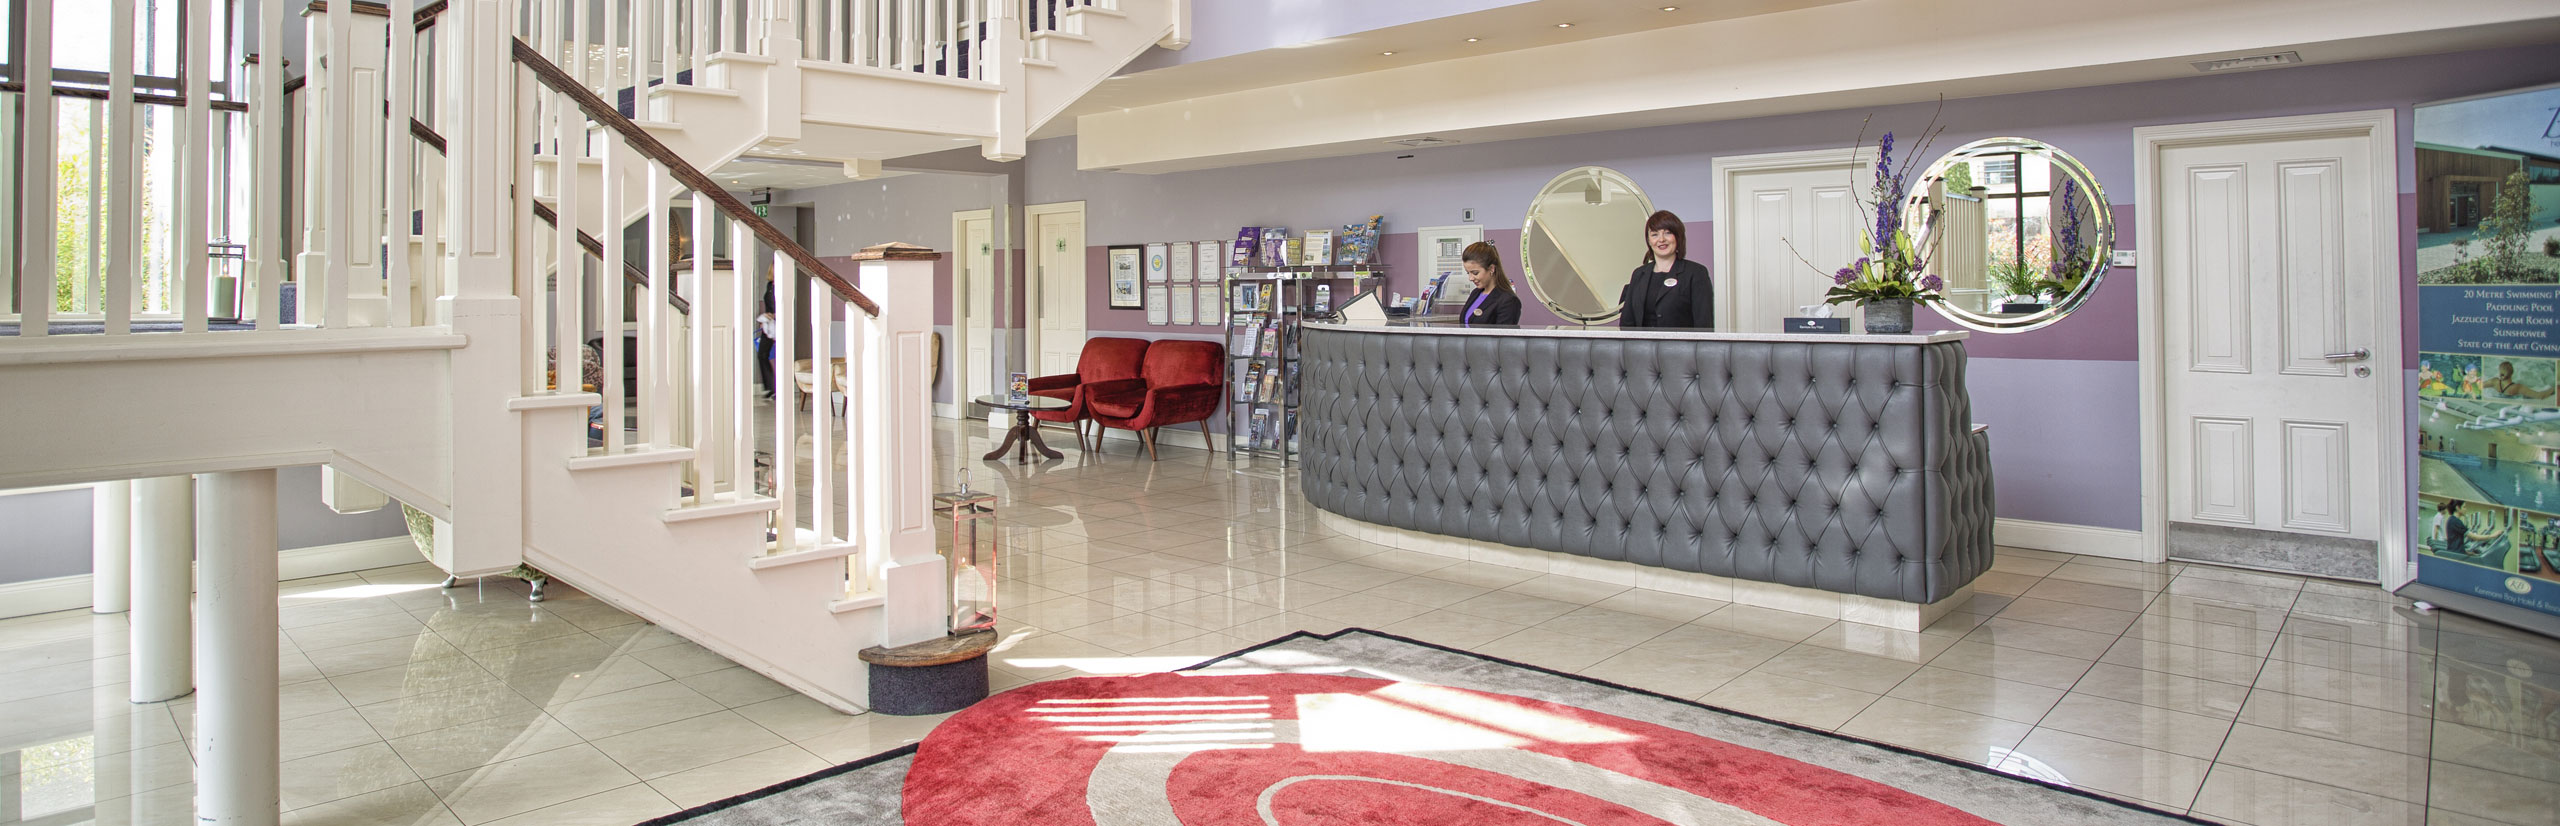 Kenmare Bay Hotel & Resort - Foyer